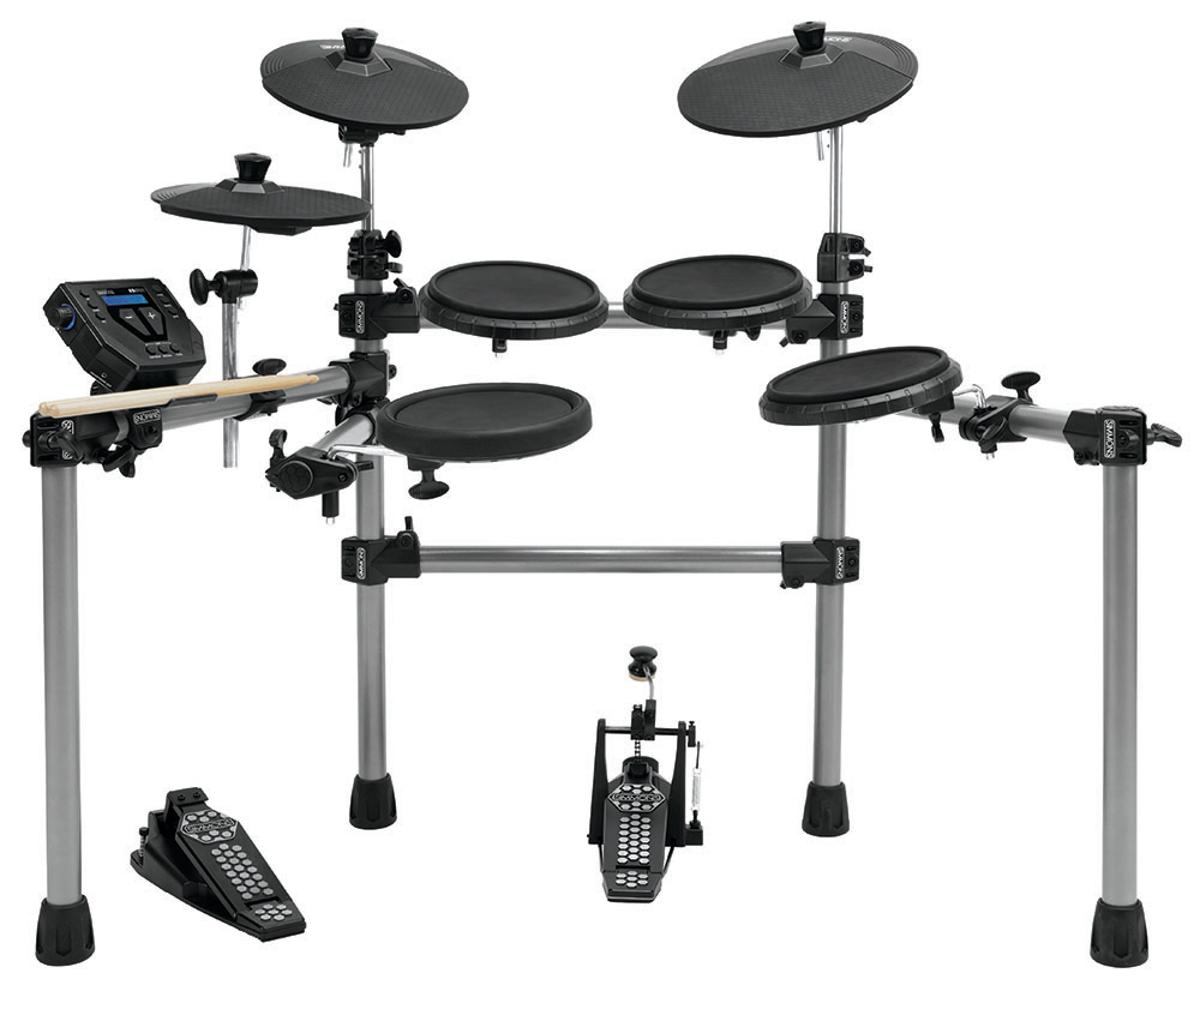 The wallet-friendly SD500 electronic drum set from Simmons